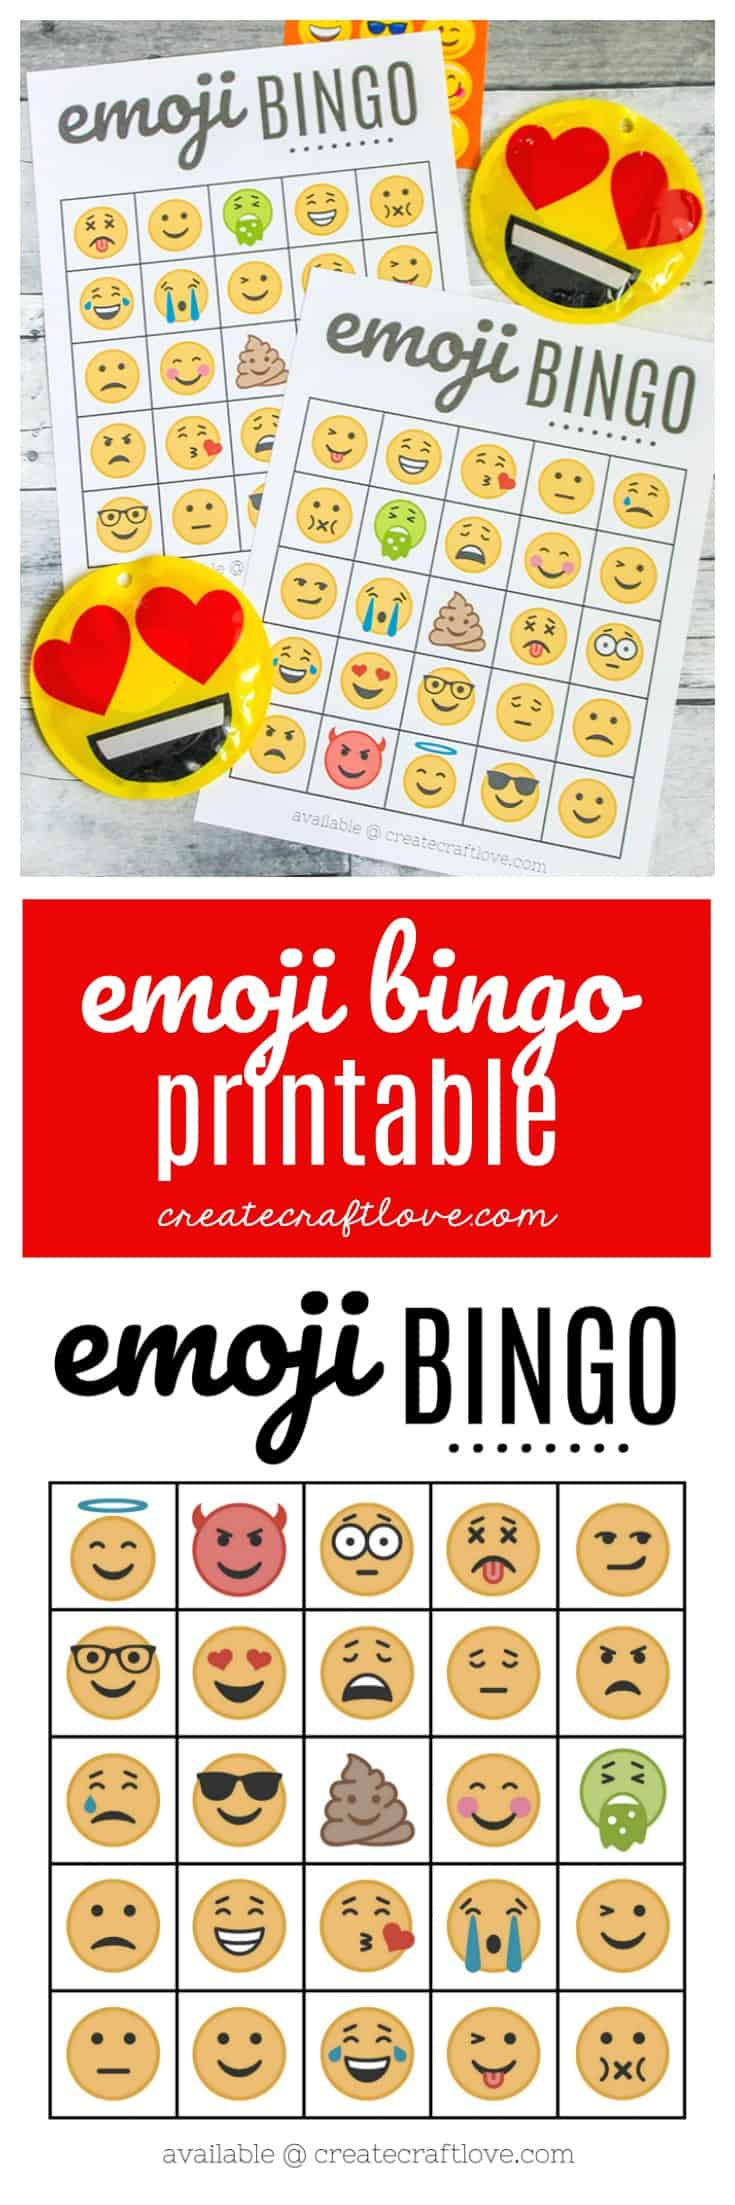 photo relating to Bingo Chips Printable referred to as No cost Emoji Bingo Printable - Deliver Craft Enjoy